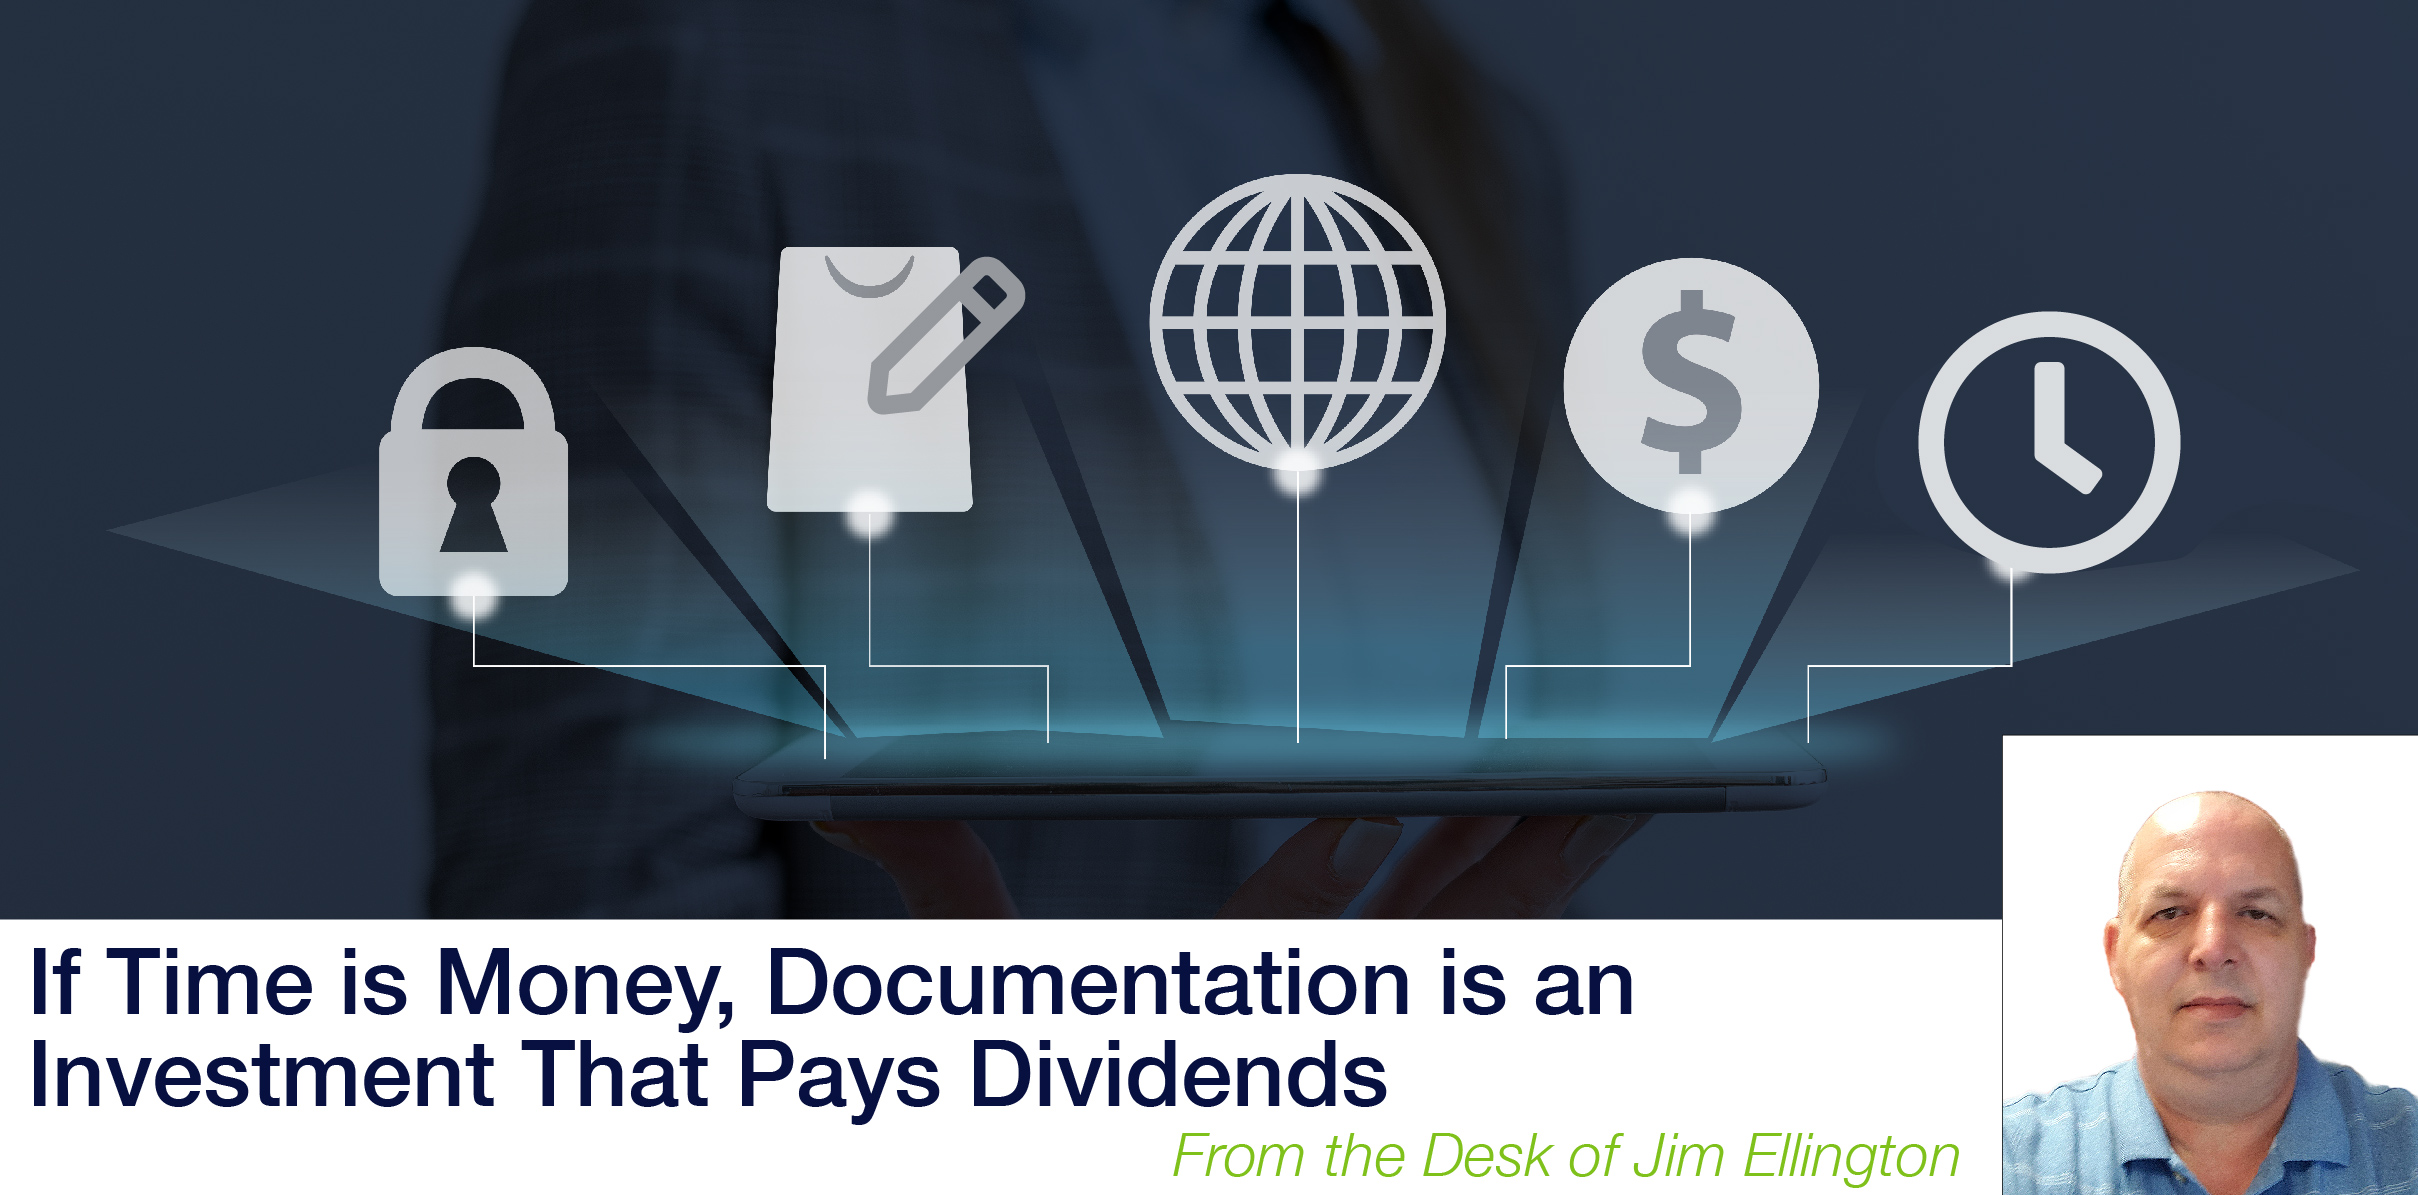 If Time is Money, Documentation is an Investment That Pays Dividends image